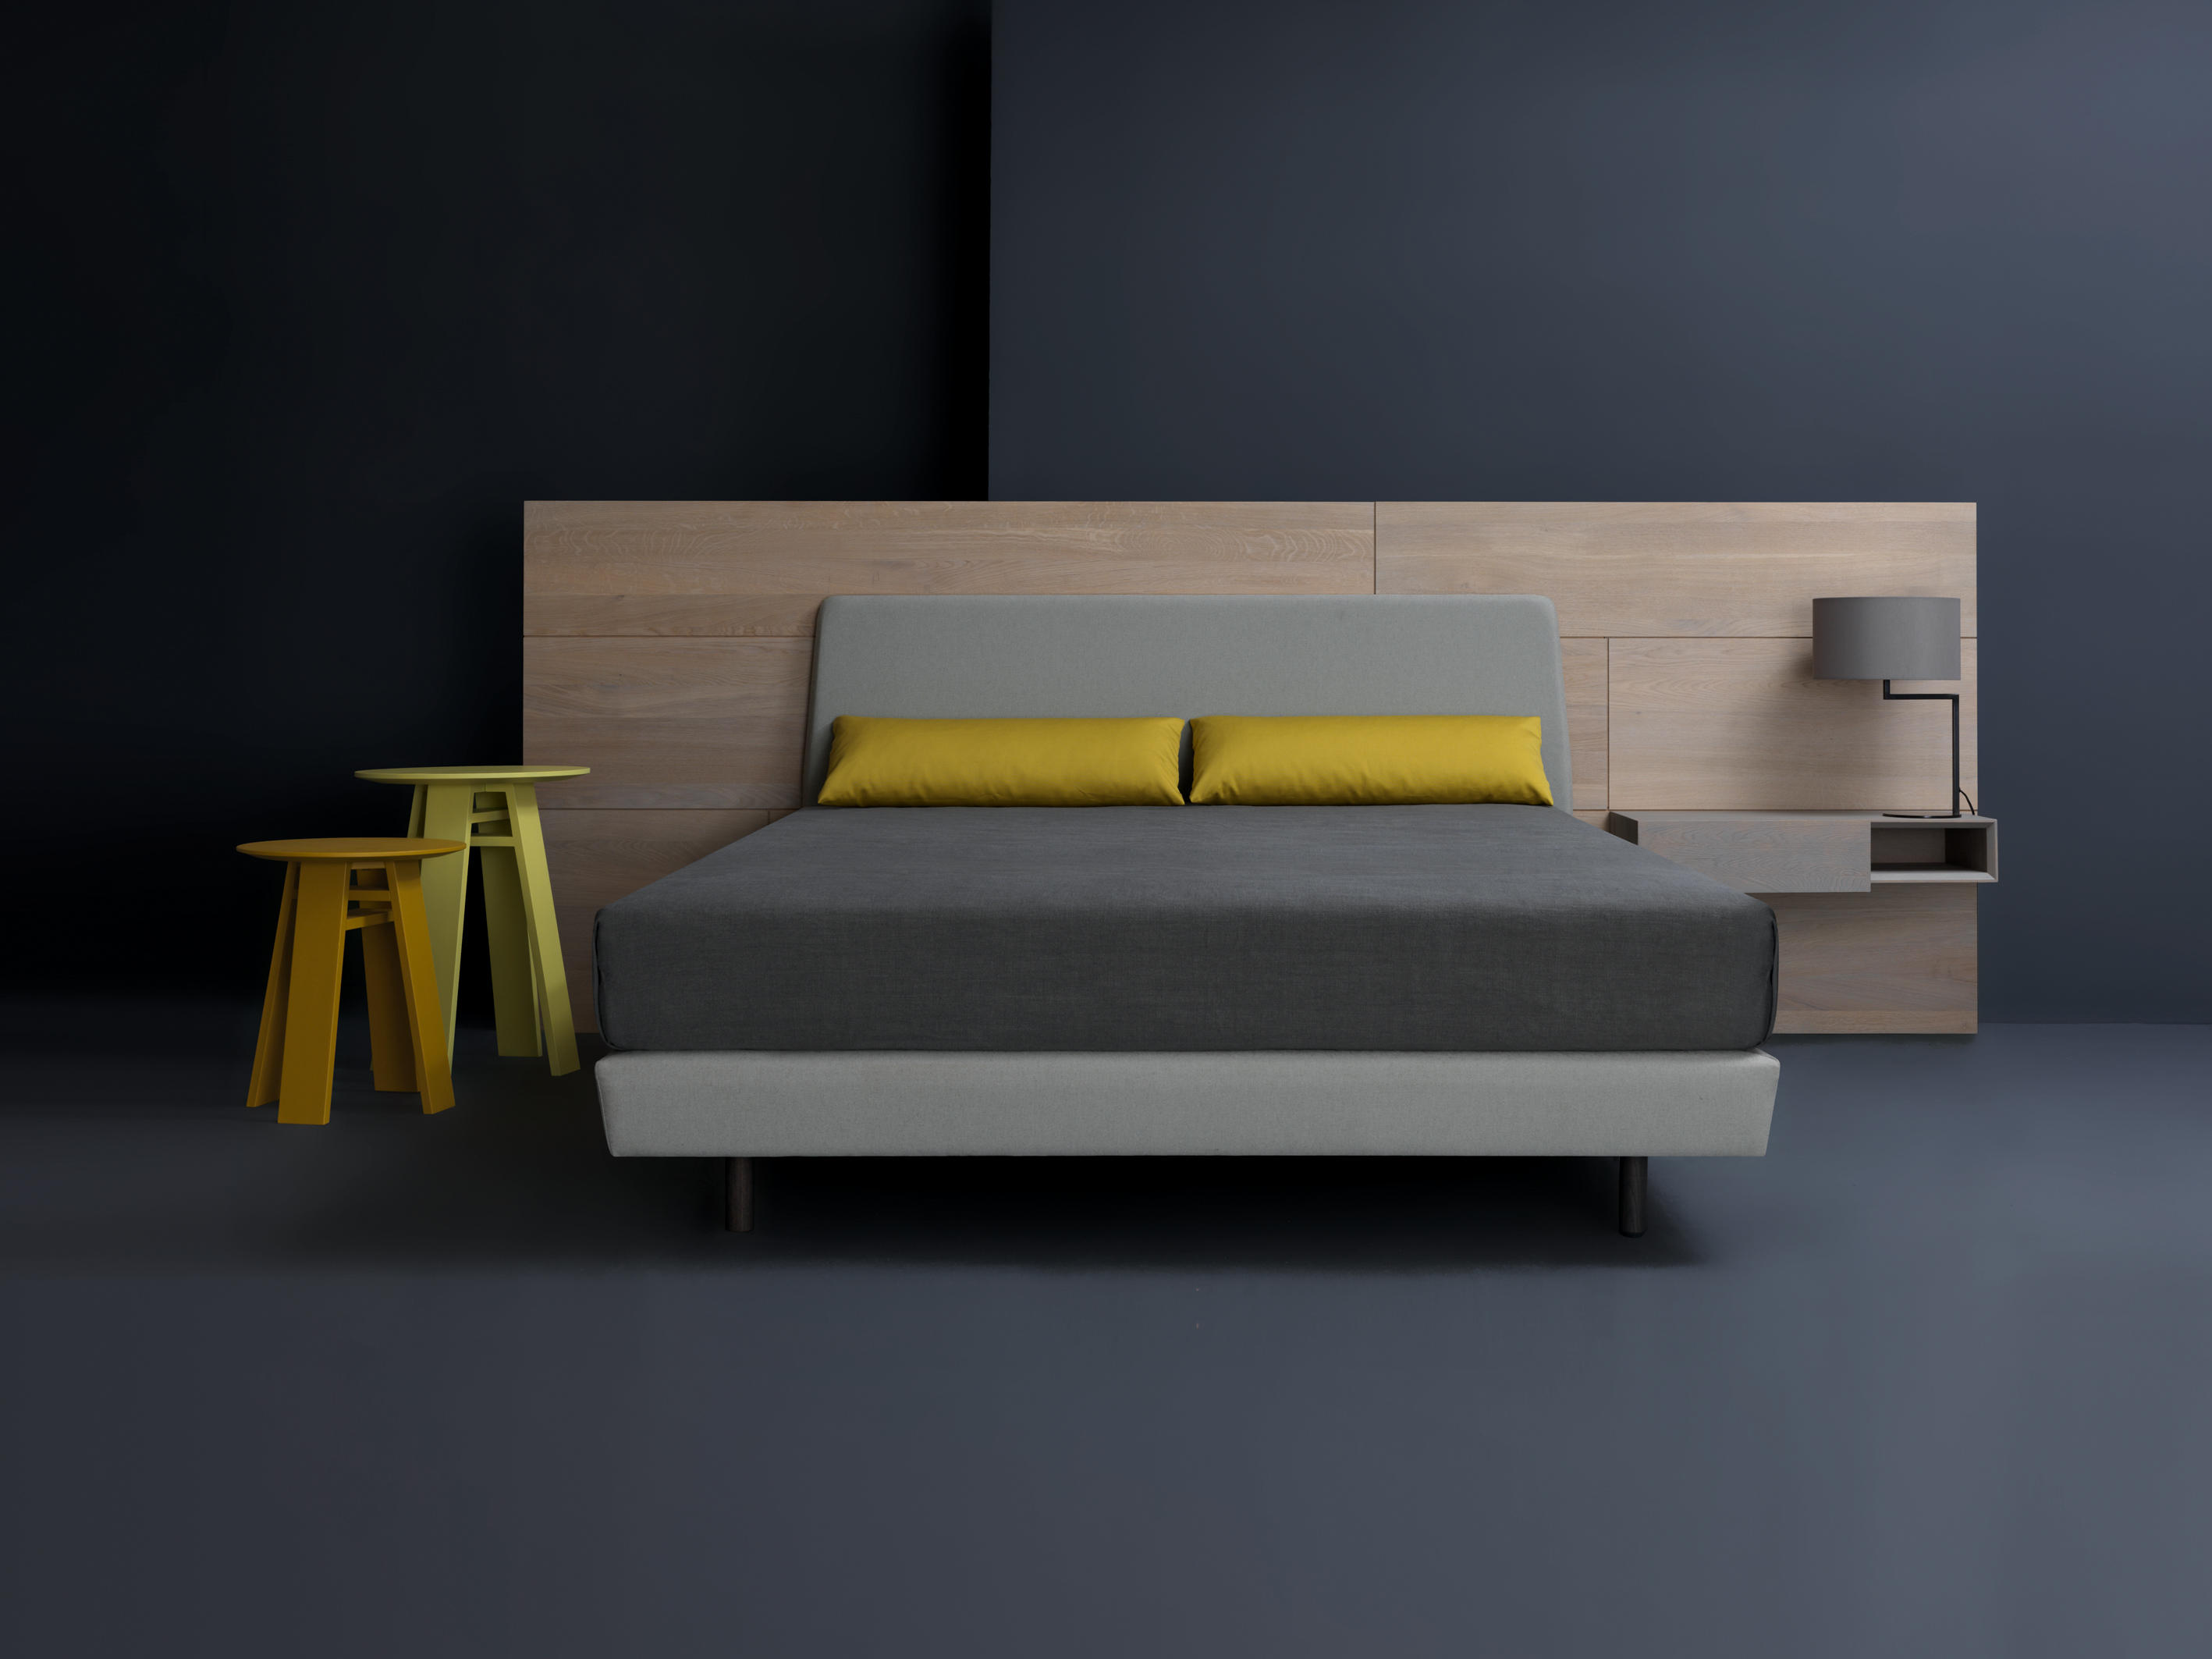 Marvelous photograph of Miut Panel high Double beds by Zeitraum Architonic with #9E882D color and 2835x2126 pixels